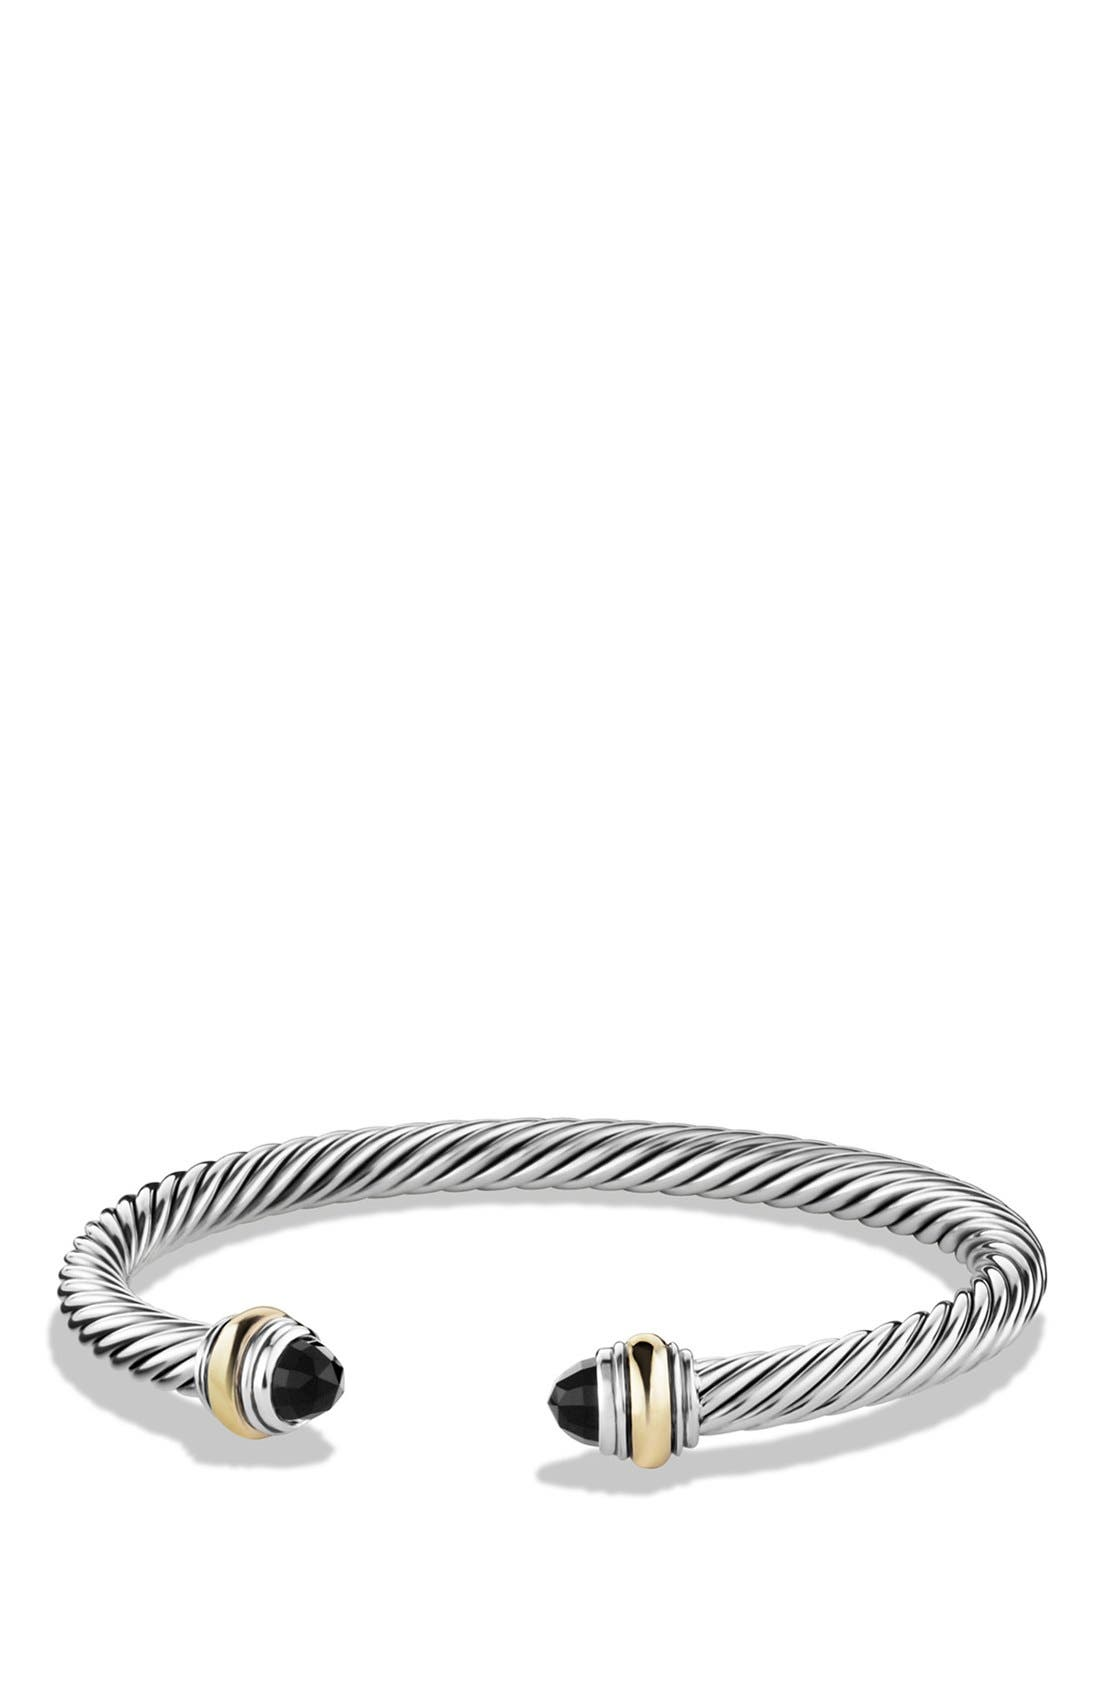 Main Image - David Yurman 'Cable Classic' Bracelet with Gold